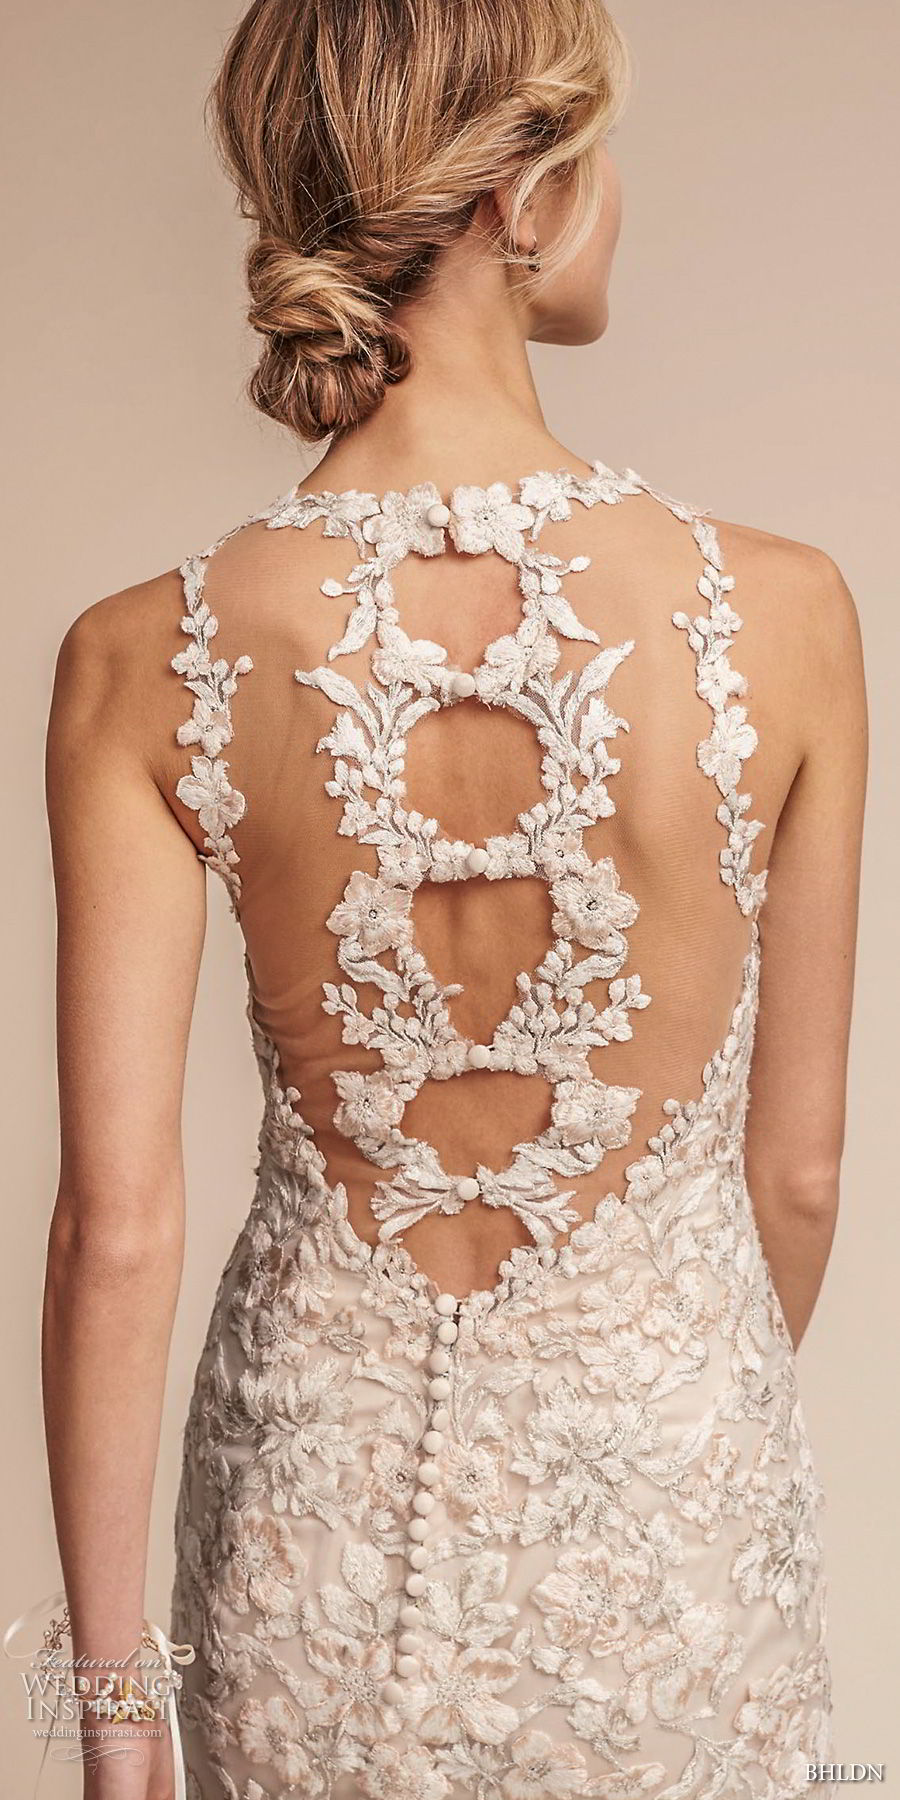 bhldn fall 2017  americana bridal sleeveless illusion jewel neck full embellishment elegant fit and flare wedding dress sheer lace back sweep train (nouveau) zbv